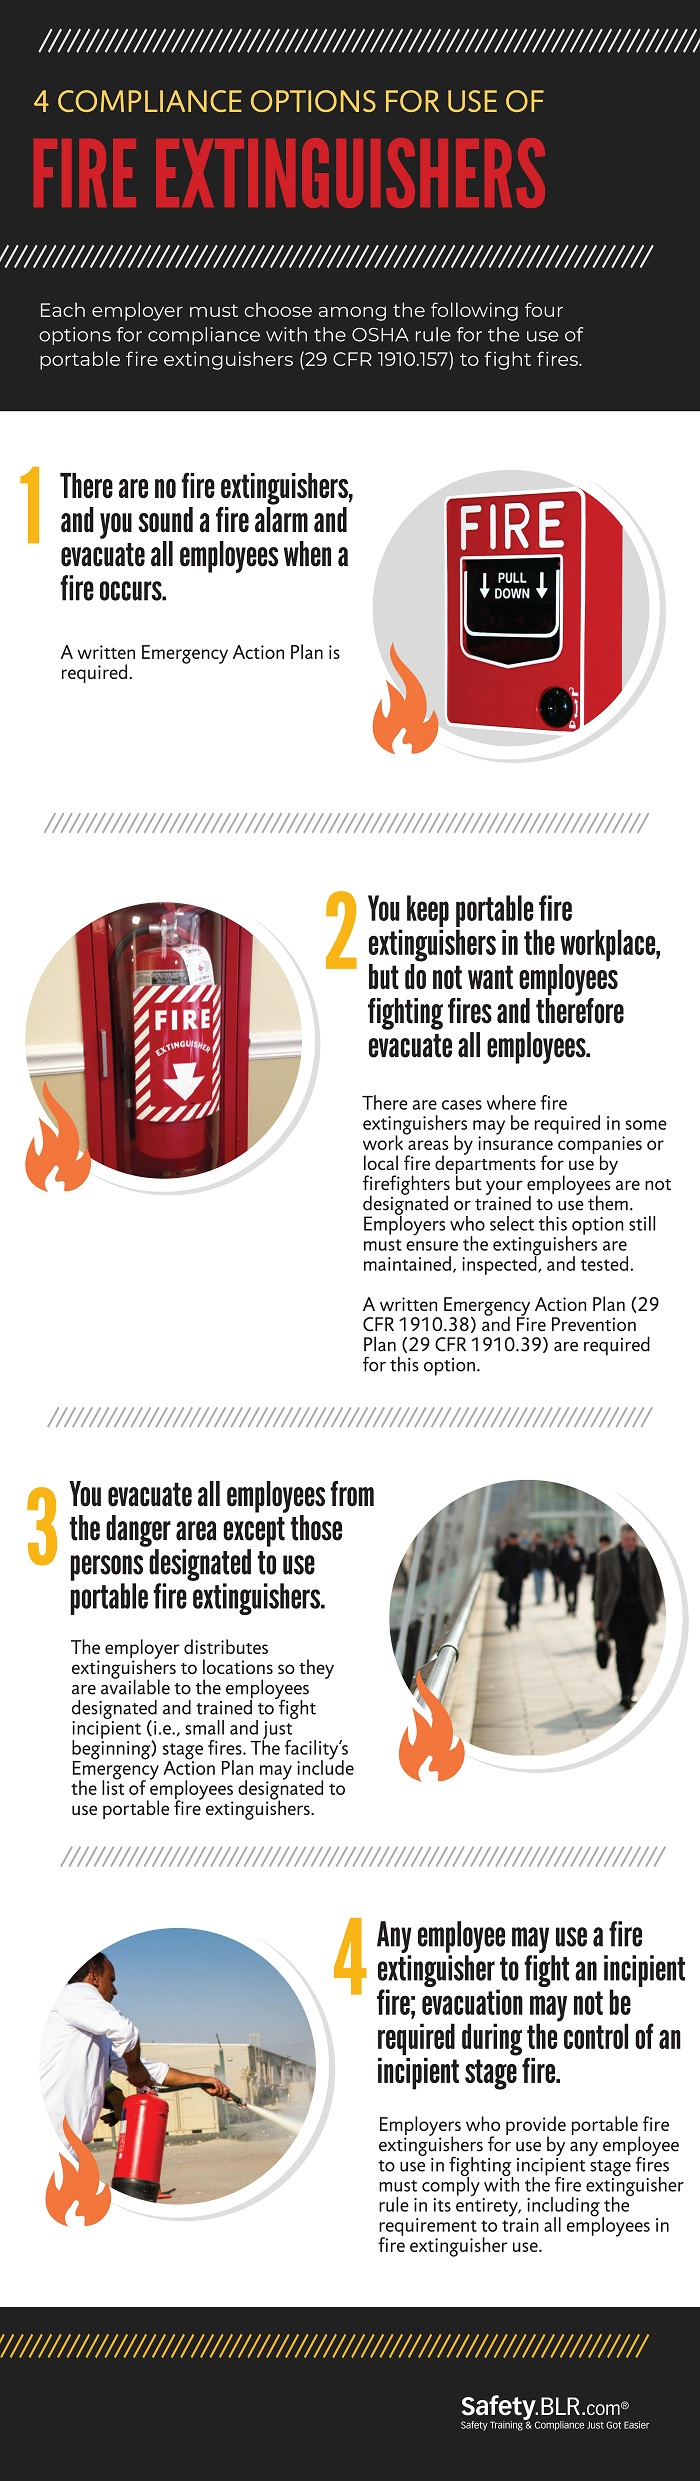 Four Compliance Options For Use Of Fire Extinguishers